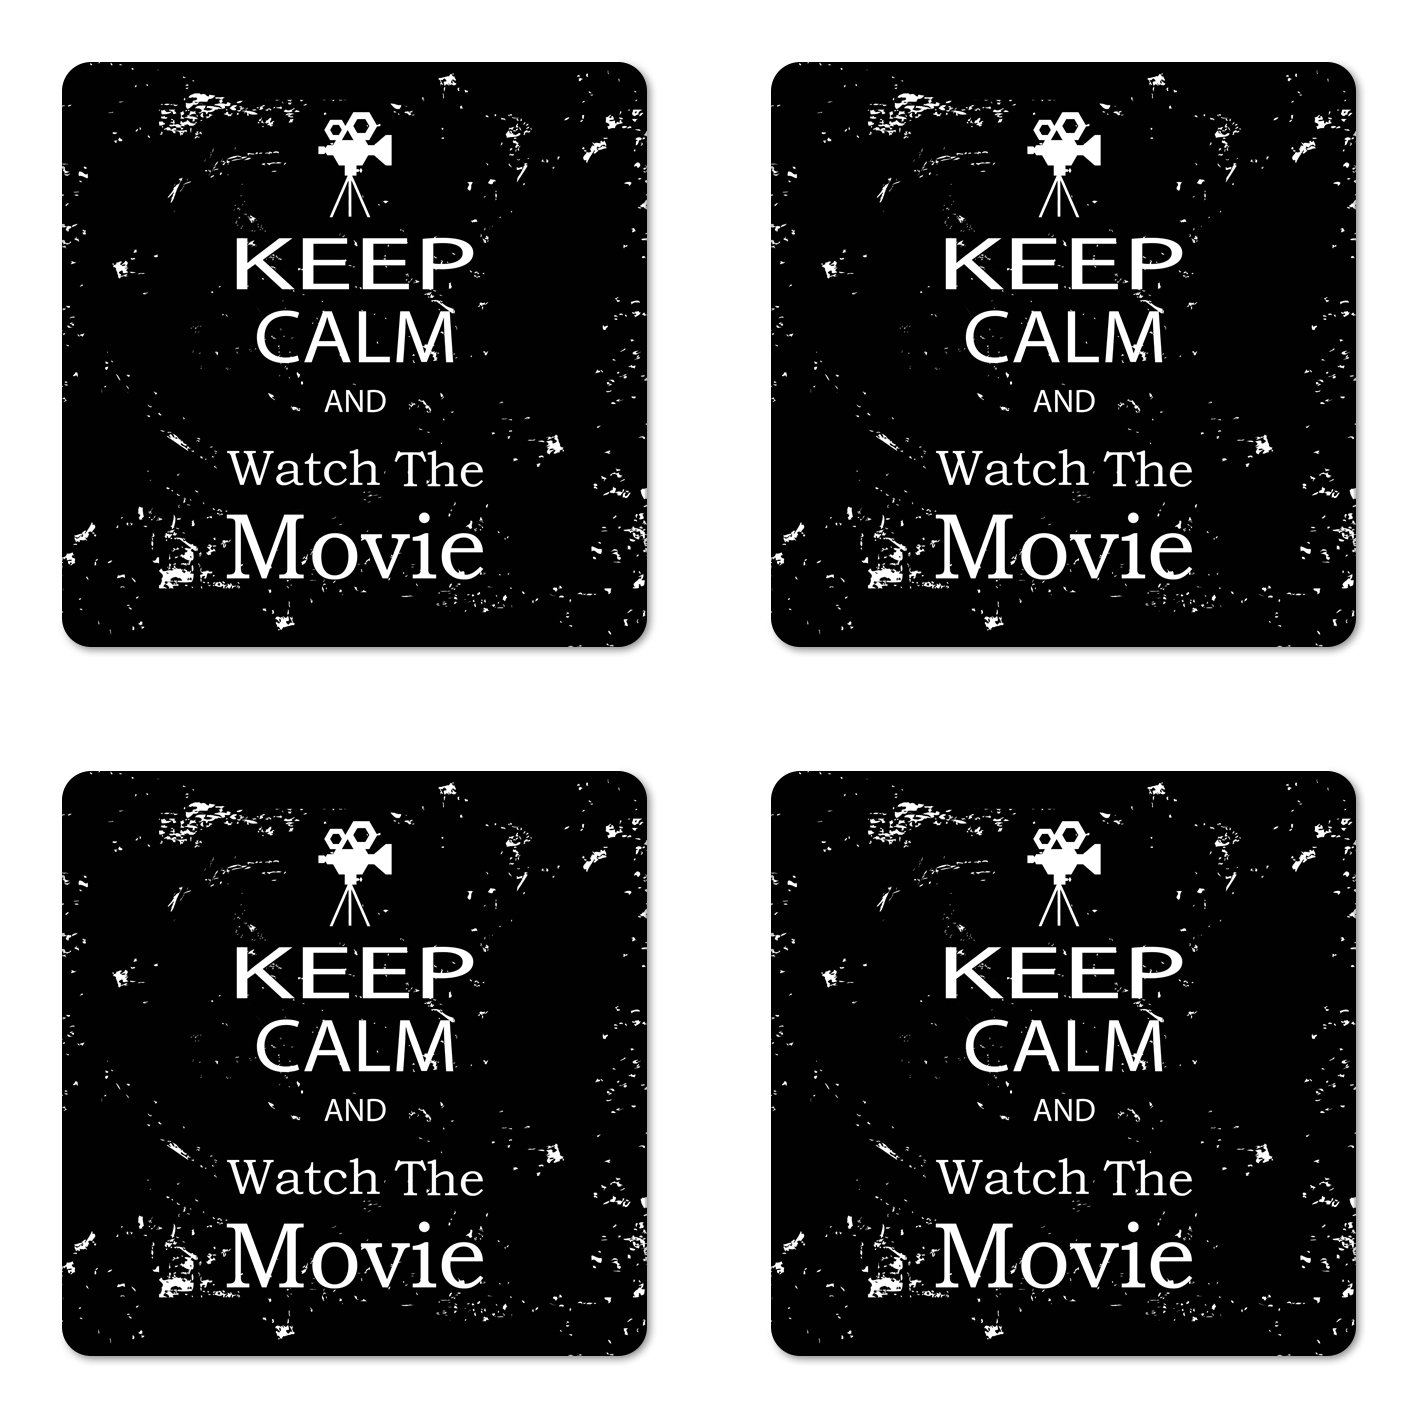 Ambesonne Keep Calm Coaster Set of Four, Watch the Movie Quote for Film Buffs Grungy Weathered Backdrop with Old Camera, Square Hardboard Gloss Coasters for Drinks, Black White